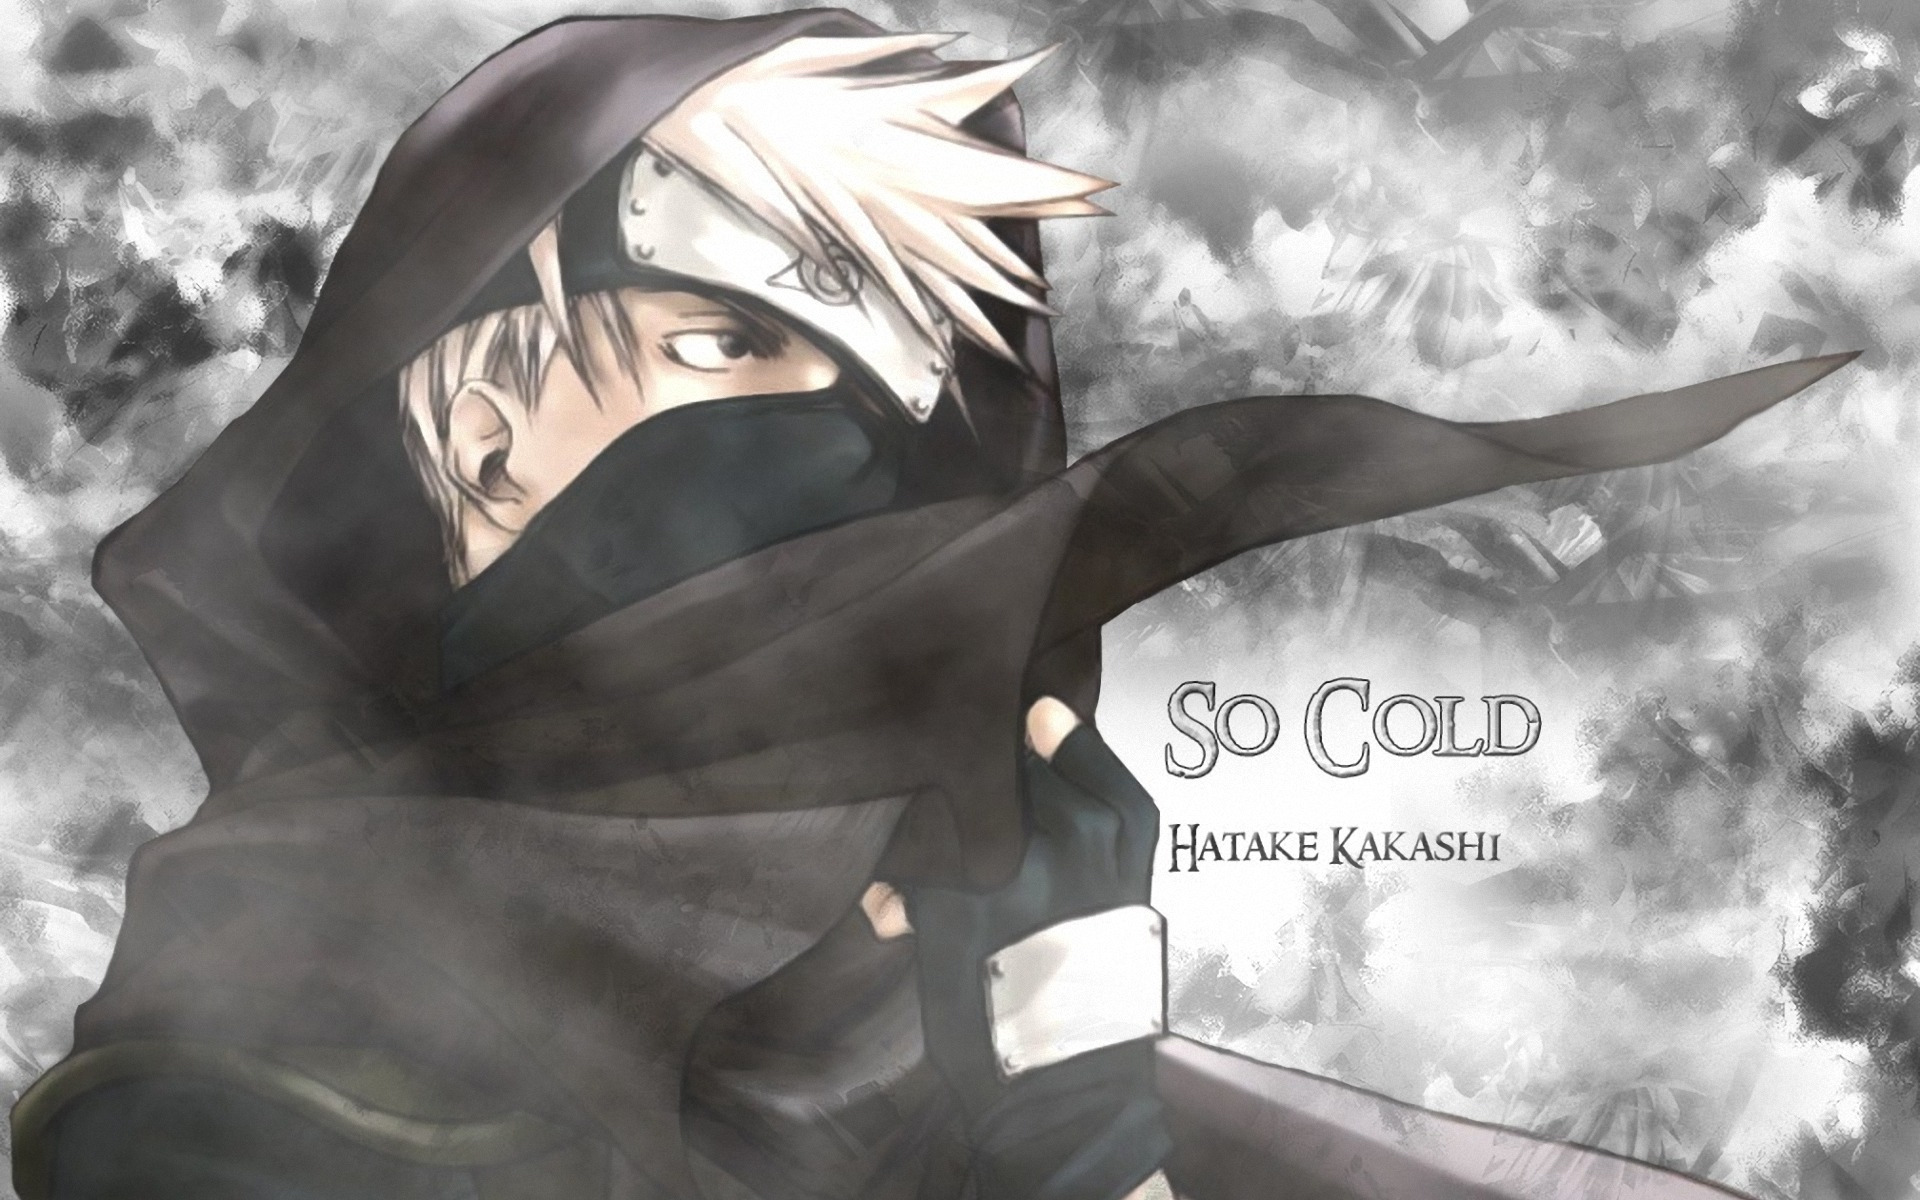 Download image So Cold Kakashi Wallpaper 1280x1024 Wallpapers PC 1920x1200